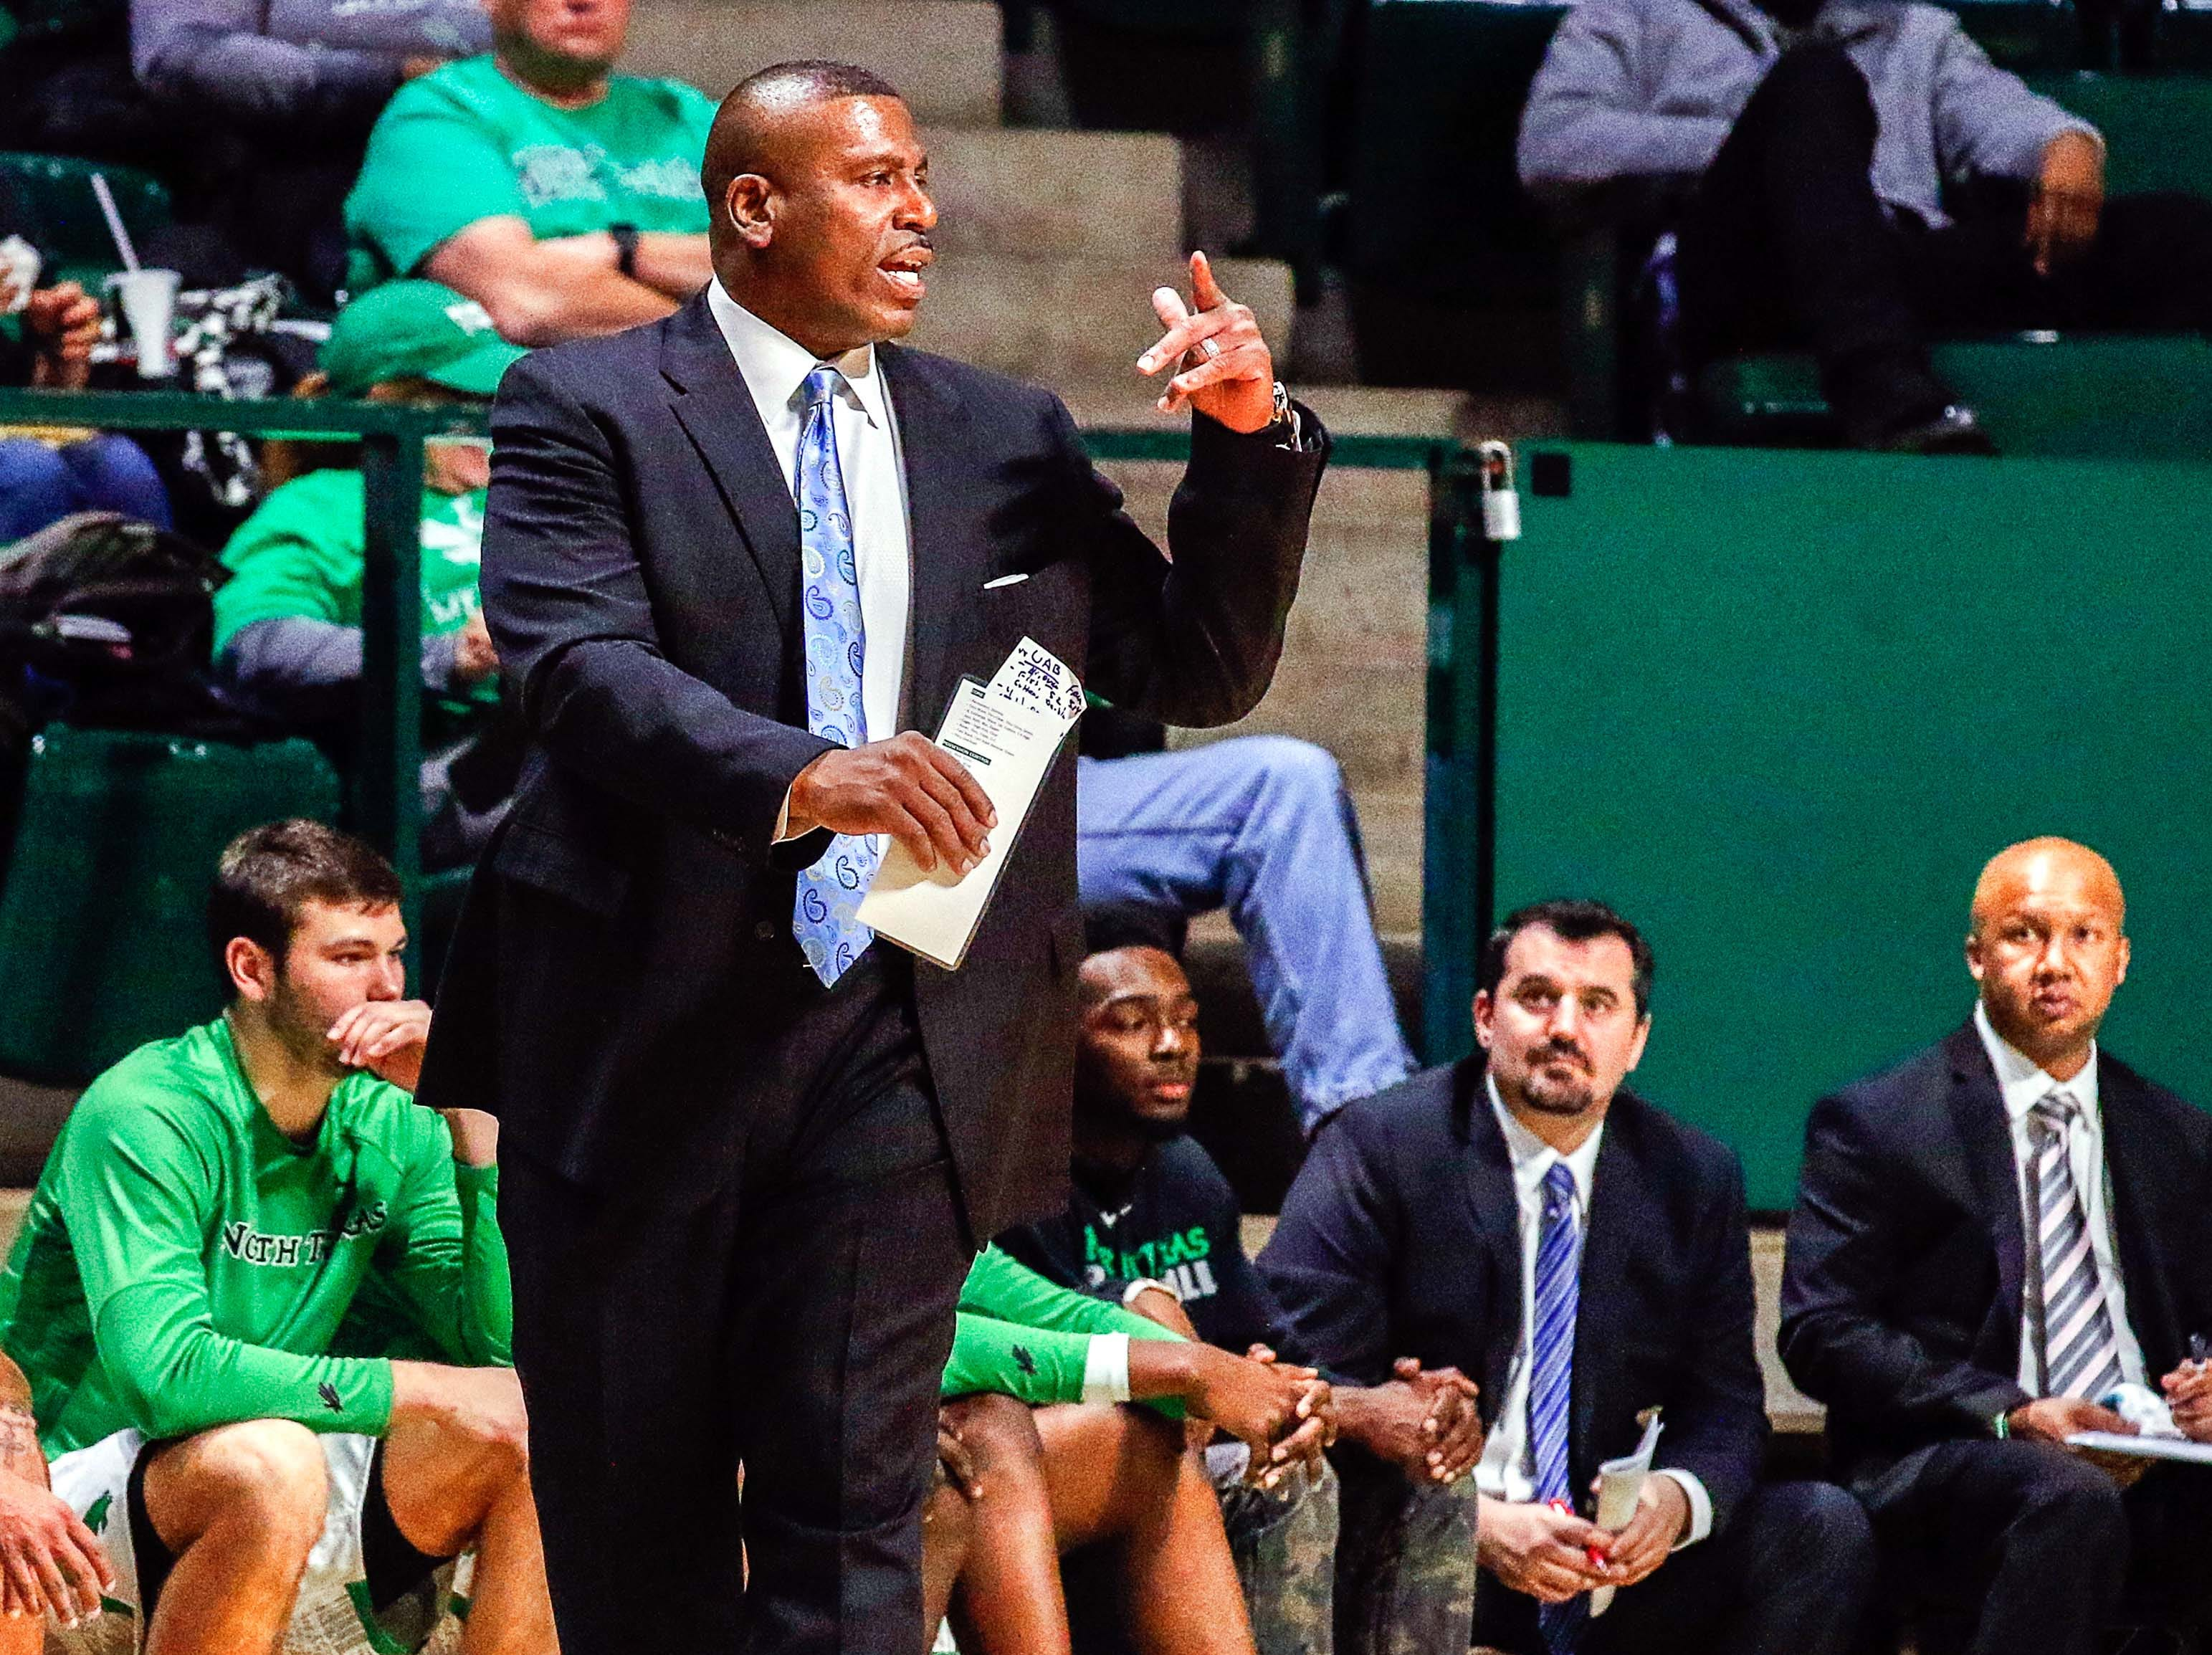 Jan 5, 2017; Denton, TX, USA; North Texas Mean Green head coach Tony Benford on the sidelines against the UAB Blazers during the second half at UNT Coliseum. UAB won 54-52. Mandatory Credit: Ray Carlin-USA TODAY Sports